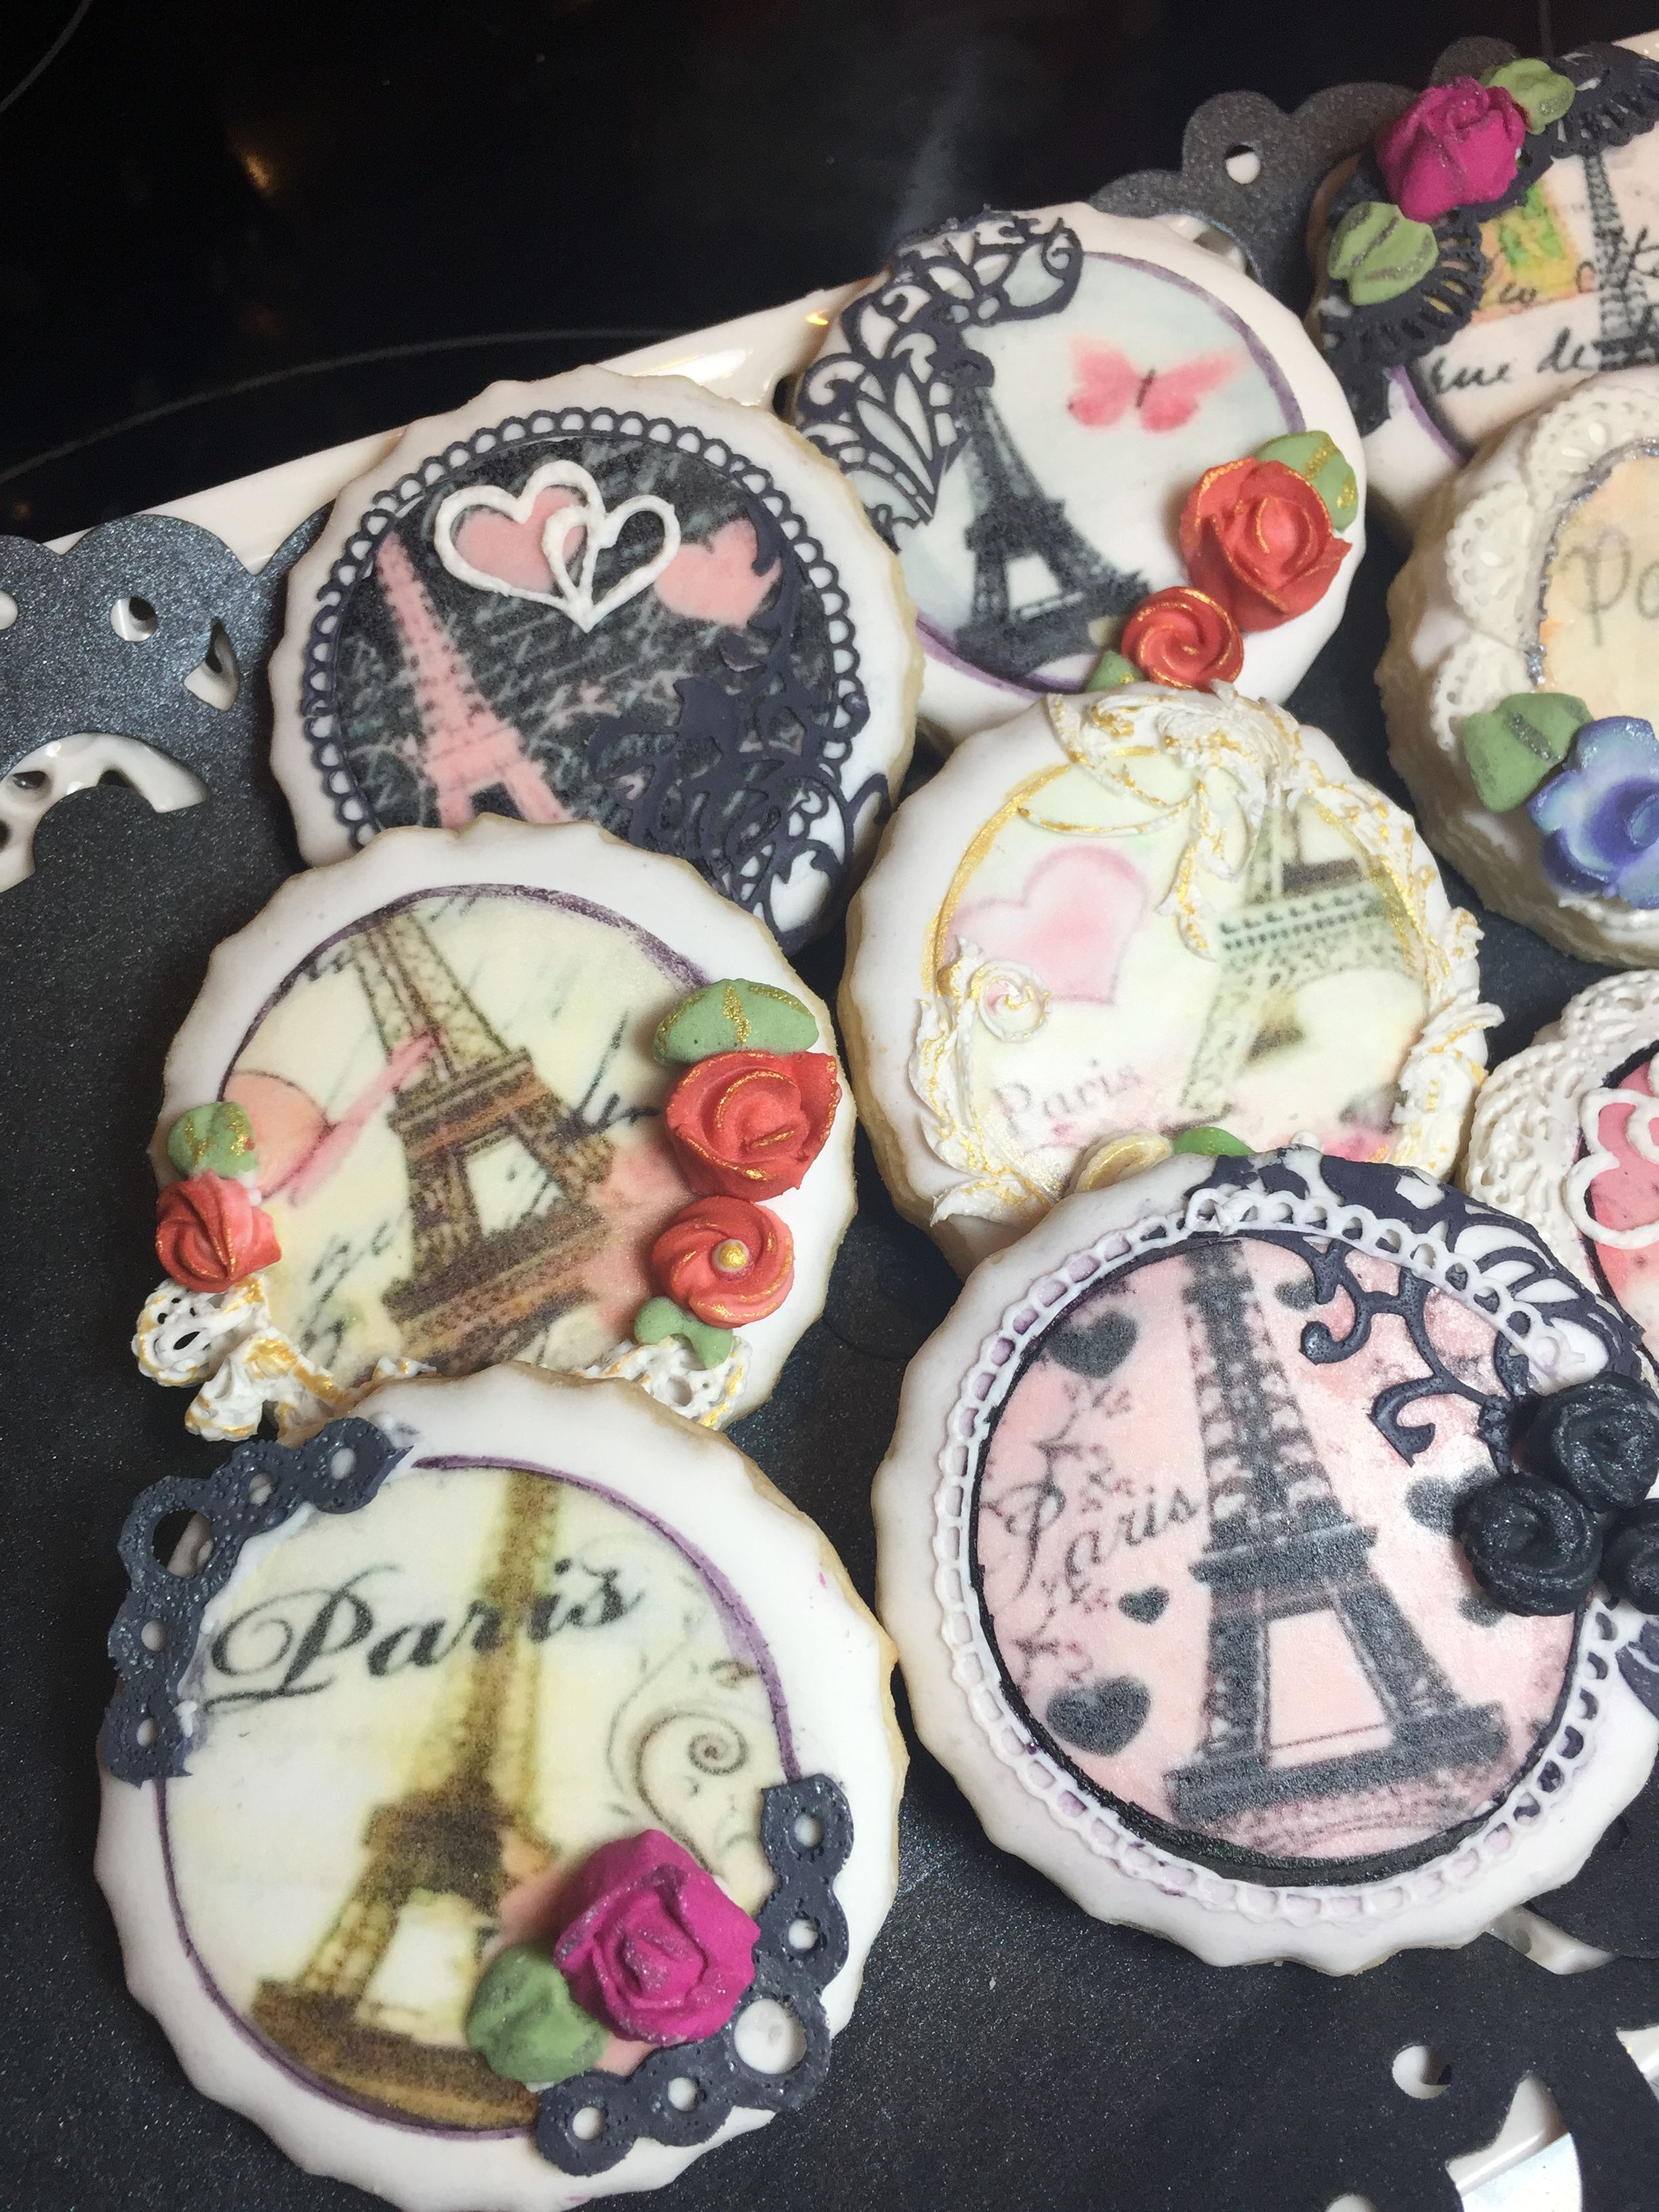 Cookies created using edible images and sugarveil icing